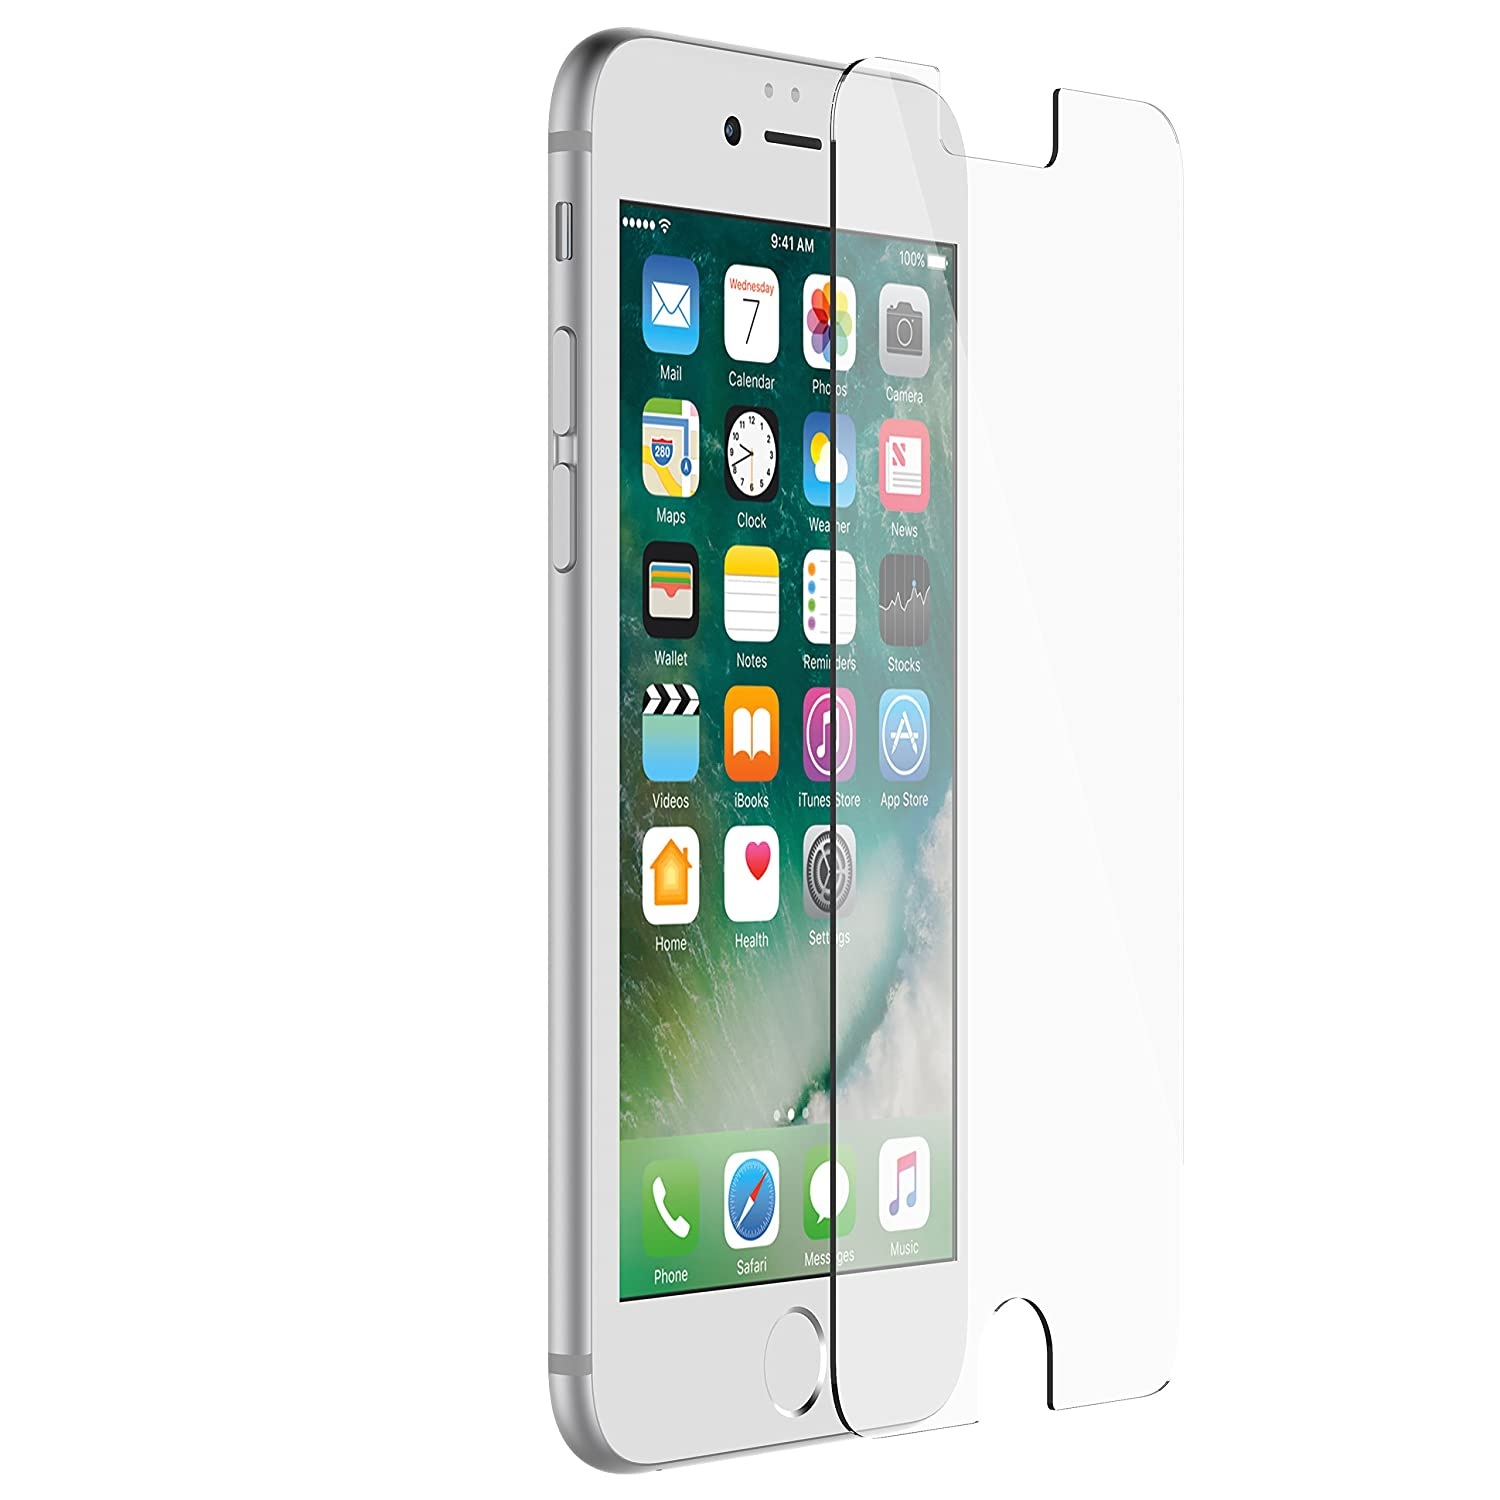 OtterBox ALPHA GLASS SERIES Screen Protector for iPhone 6/6s/7/8 (NOT Plus) - Retail Packaging - CLEAR